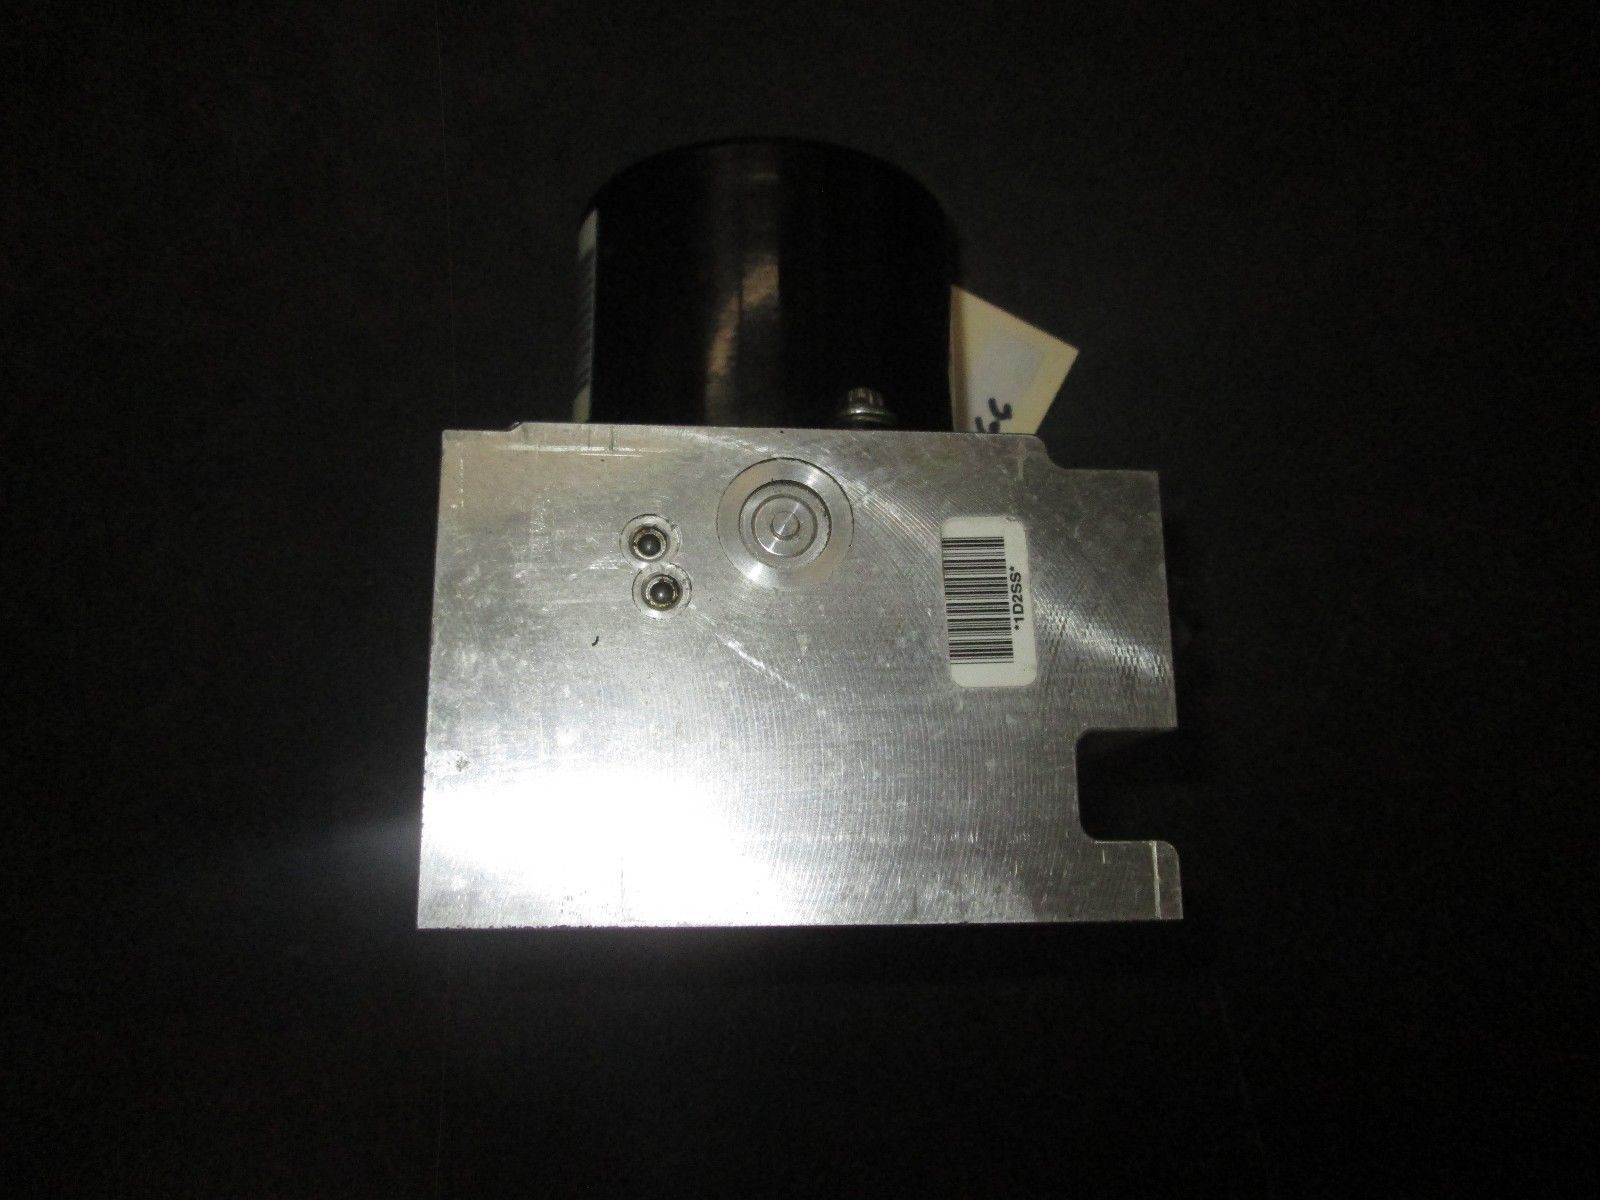 06 07 CHEVY IMPALA ABS PUMP ONLY! #15903774